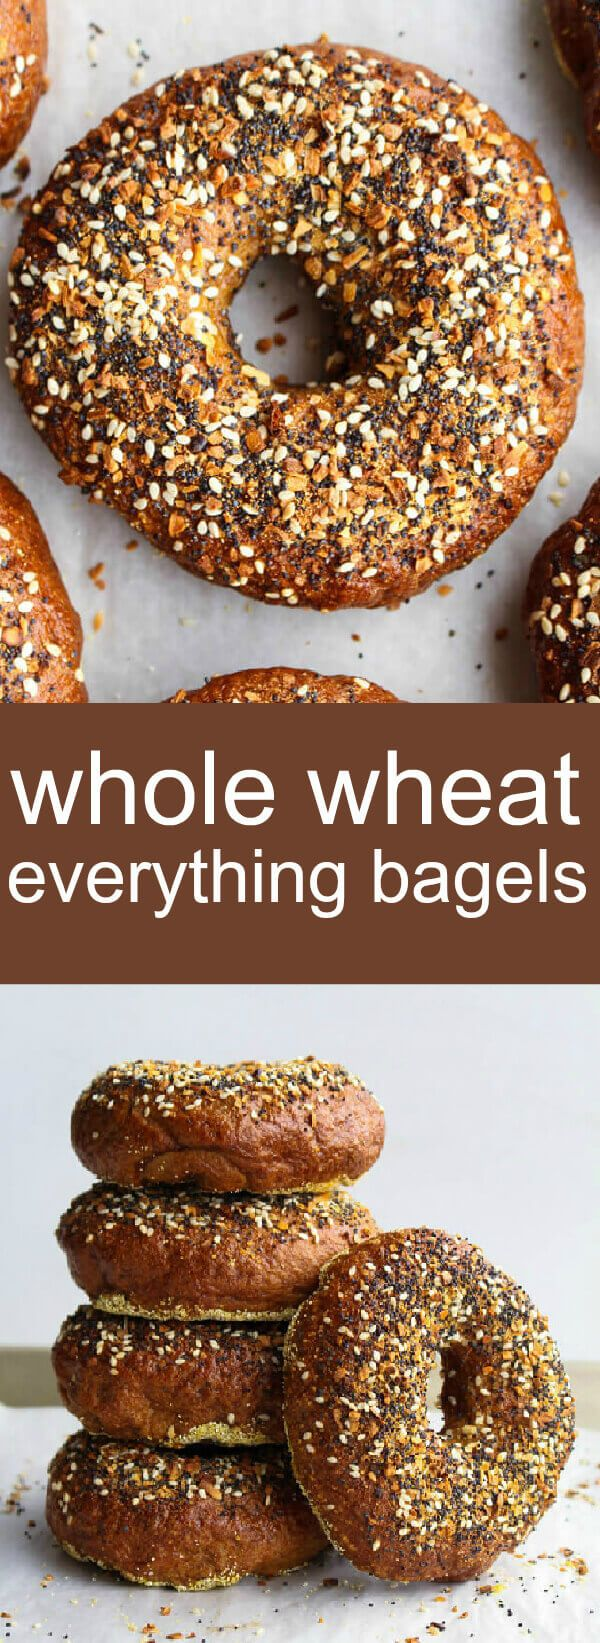 Whole Wheat Everything Bagels homemade/ bagels/ breakfast/ Savory and delicious these Whole Wheat Everything Bagels are a fun, flavorful and simple breakfast recipe that everyone will enjoy! via @tastesoflizzyt